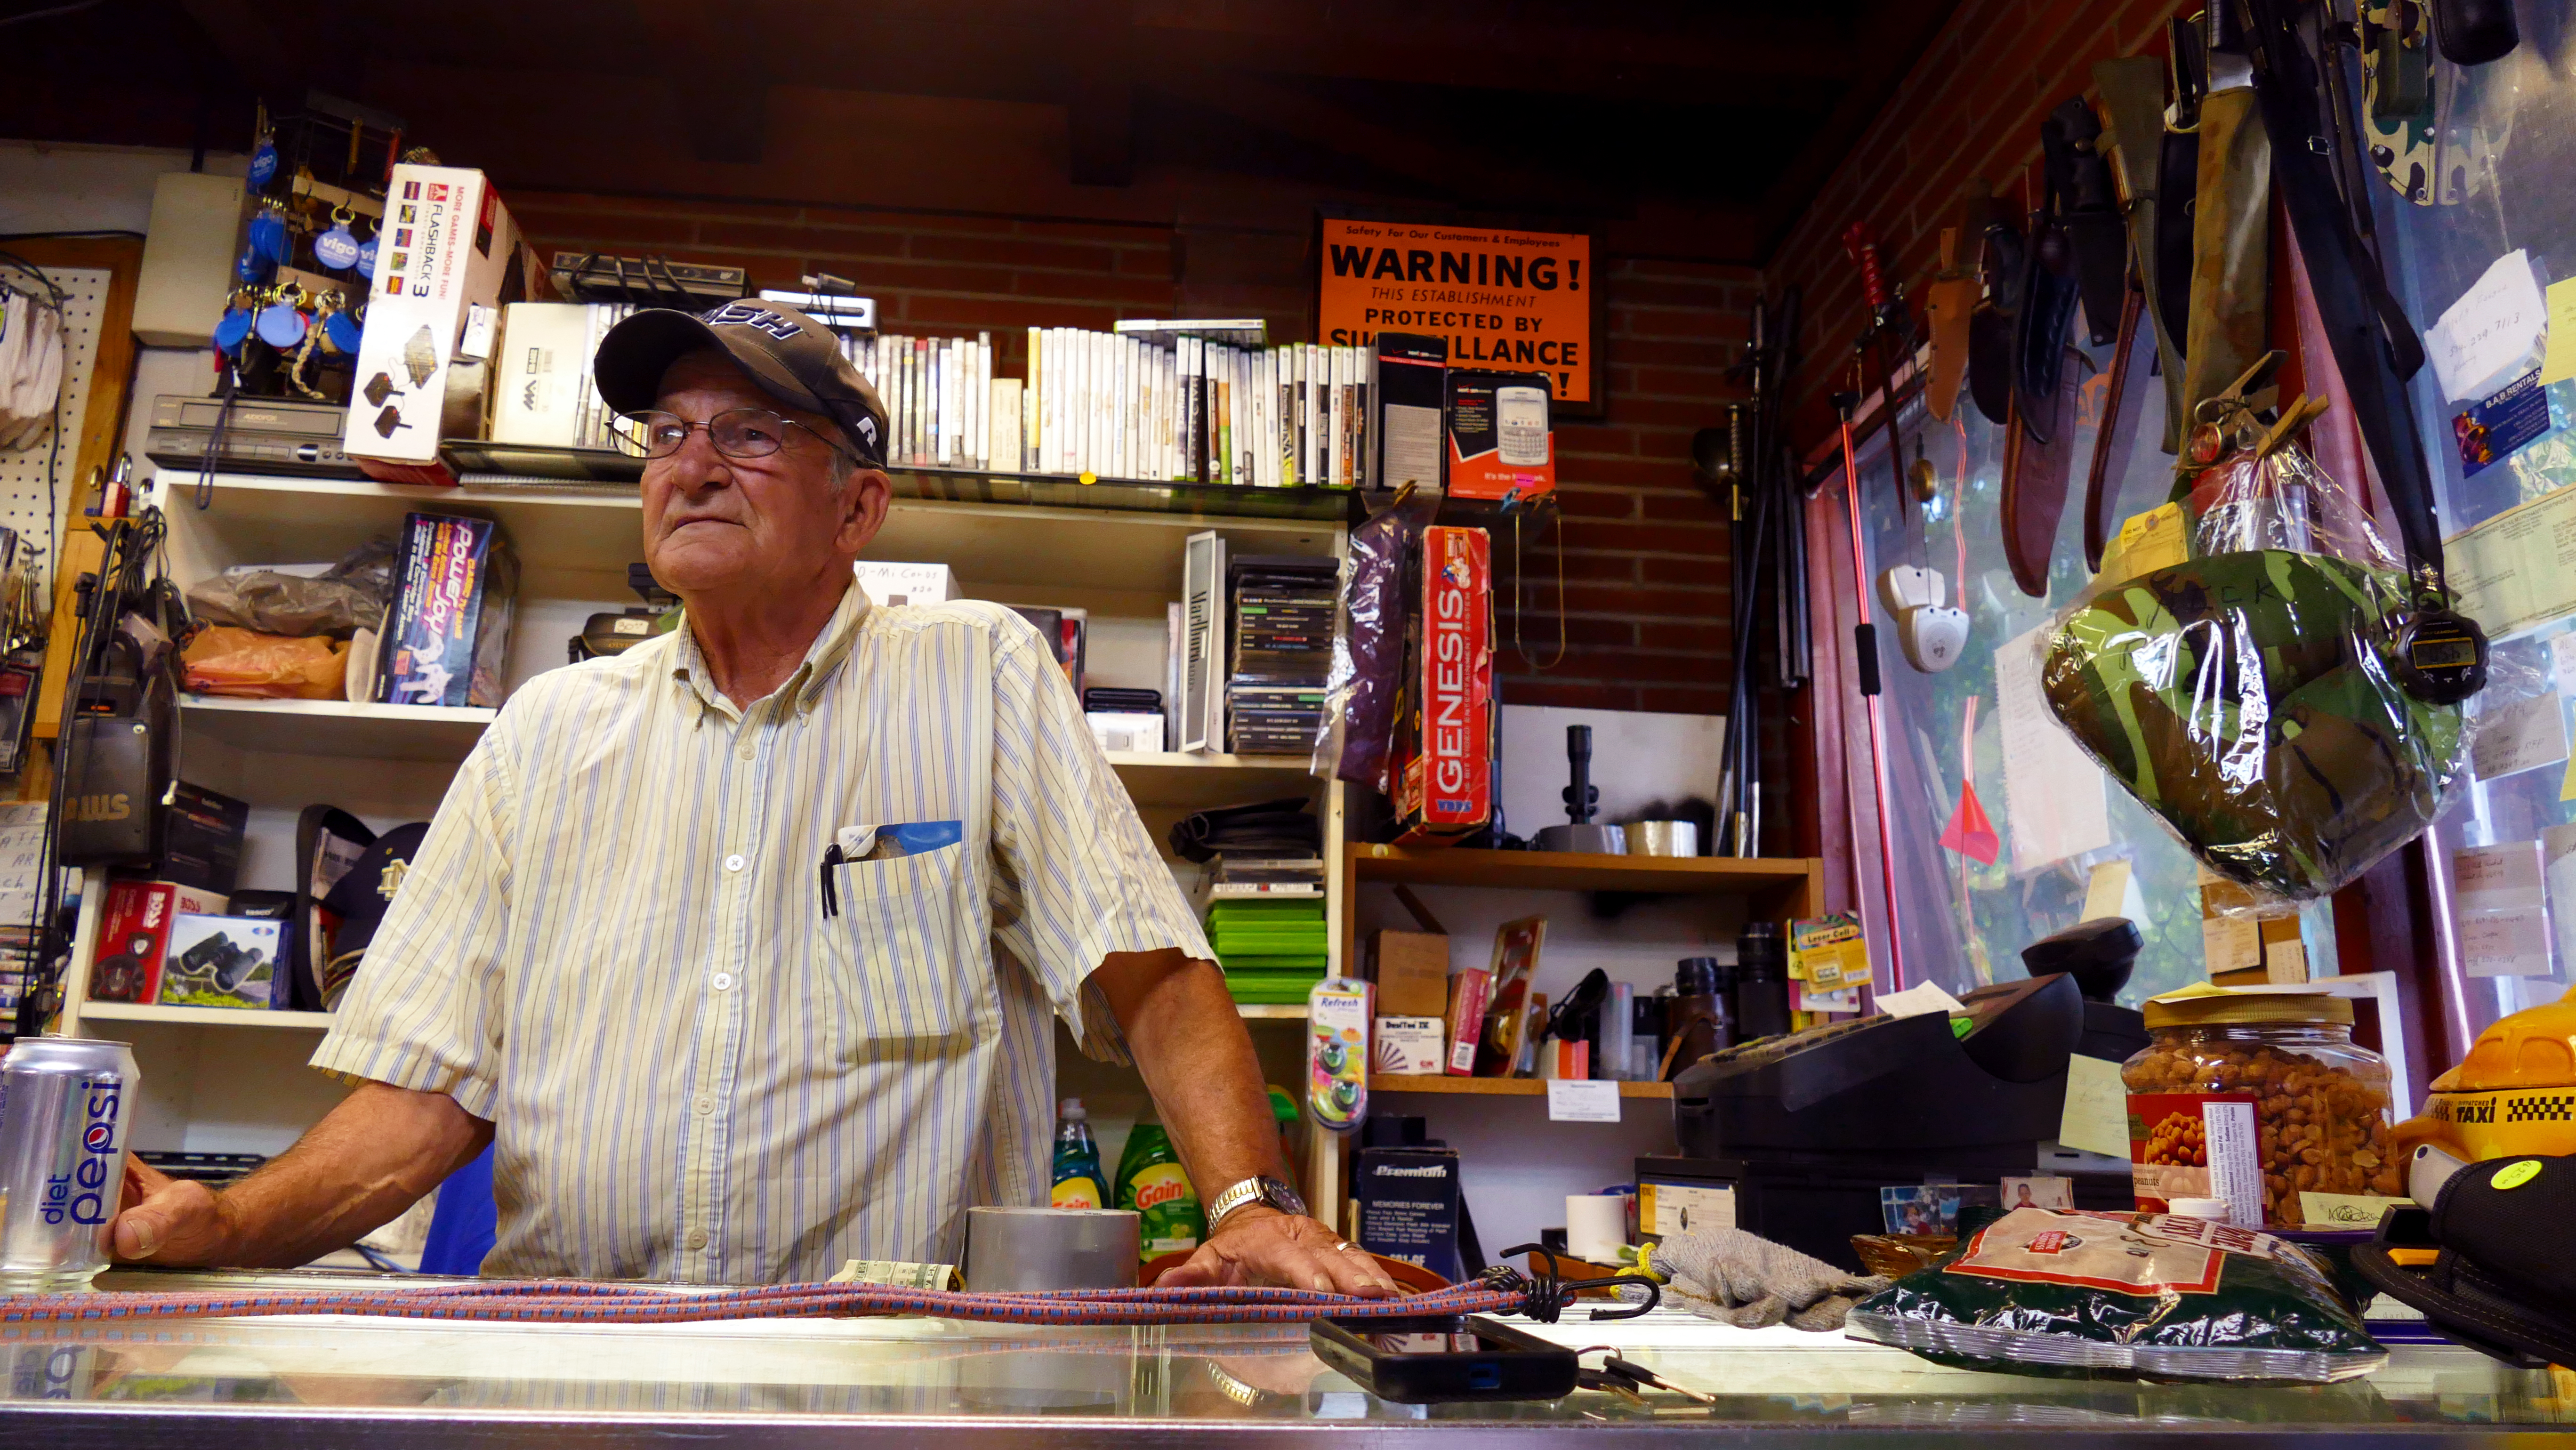 Donald Fisher, 77, opened his electronics repair shop in Elkhart in the late 1990s. He said the region is still struggling, despite the drop in unemployment.